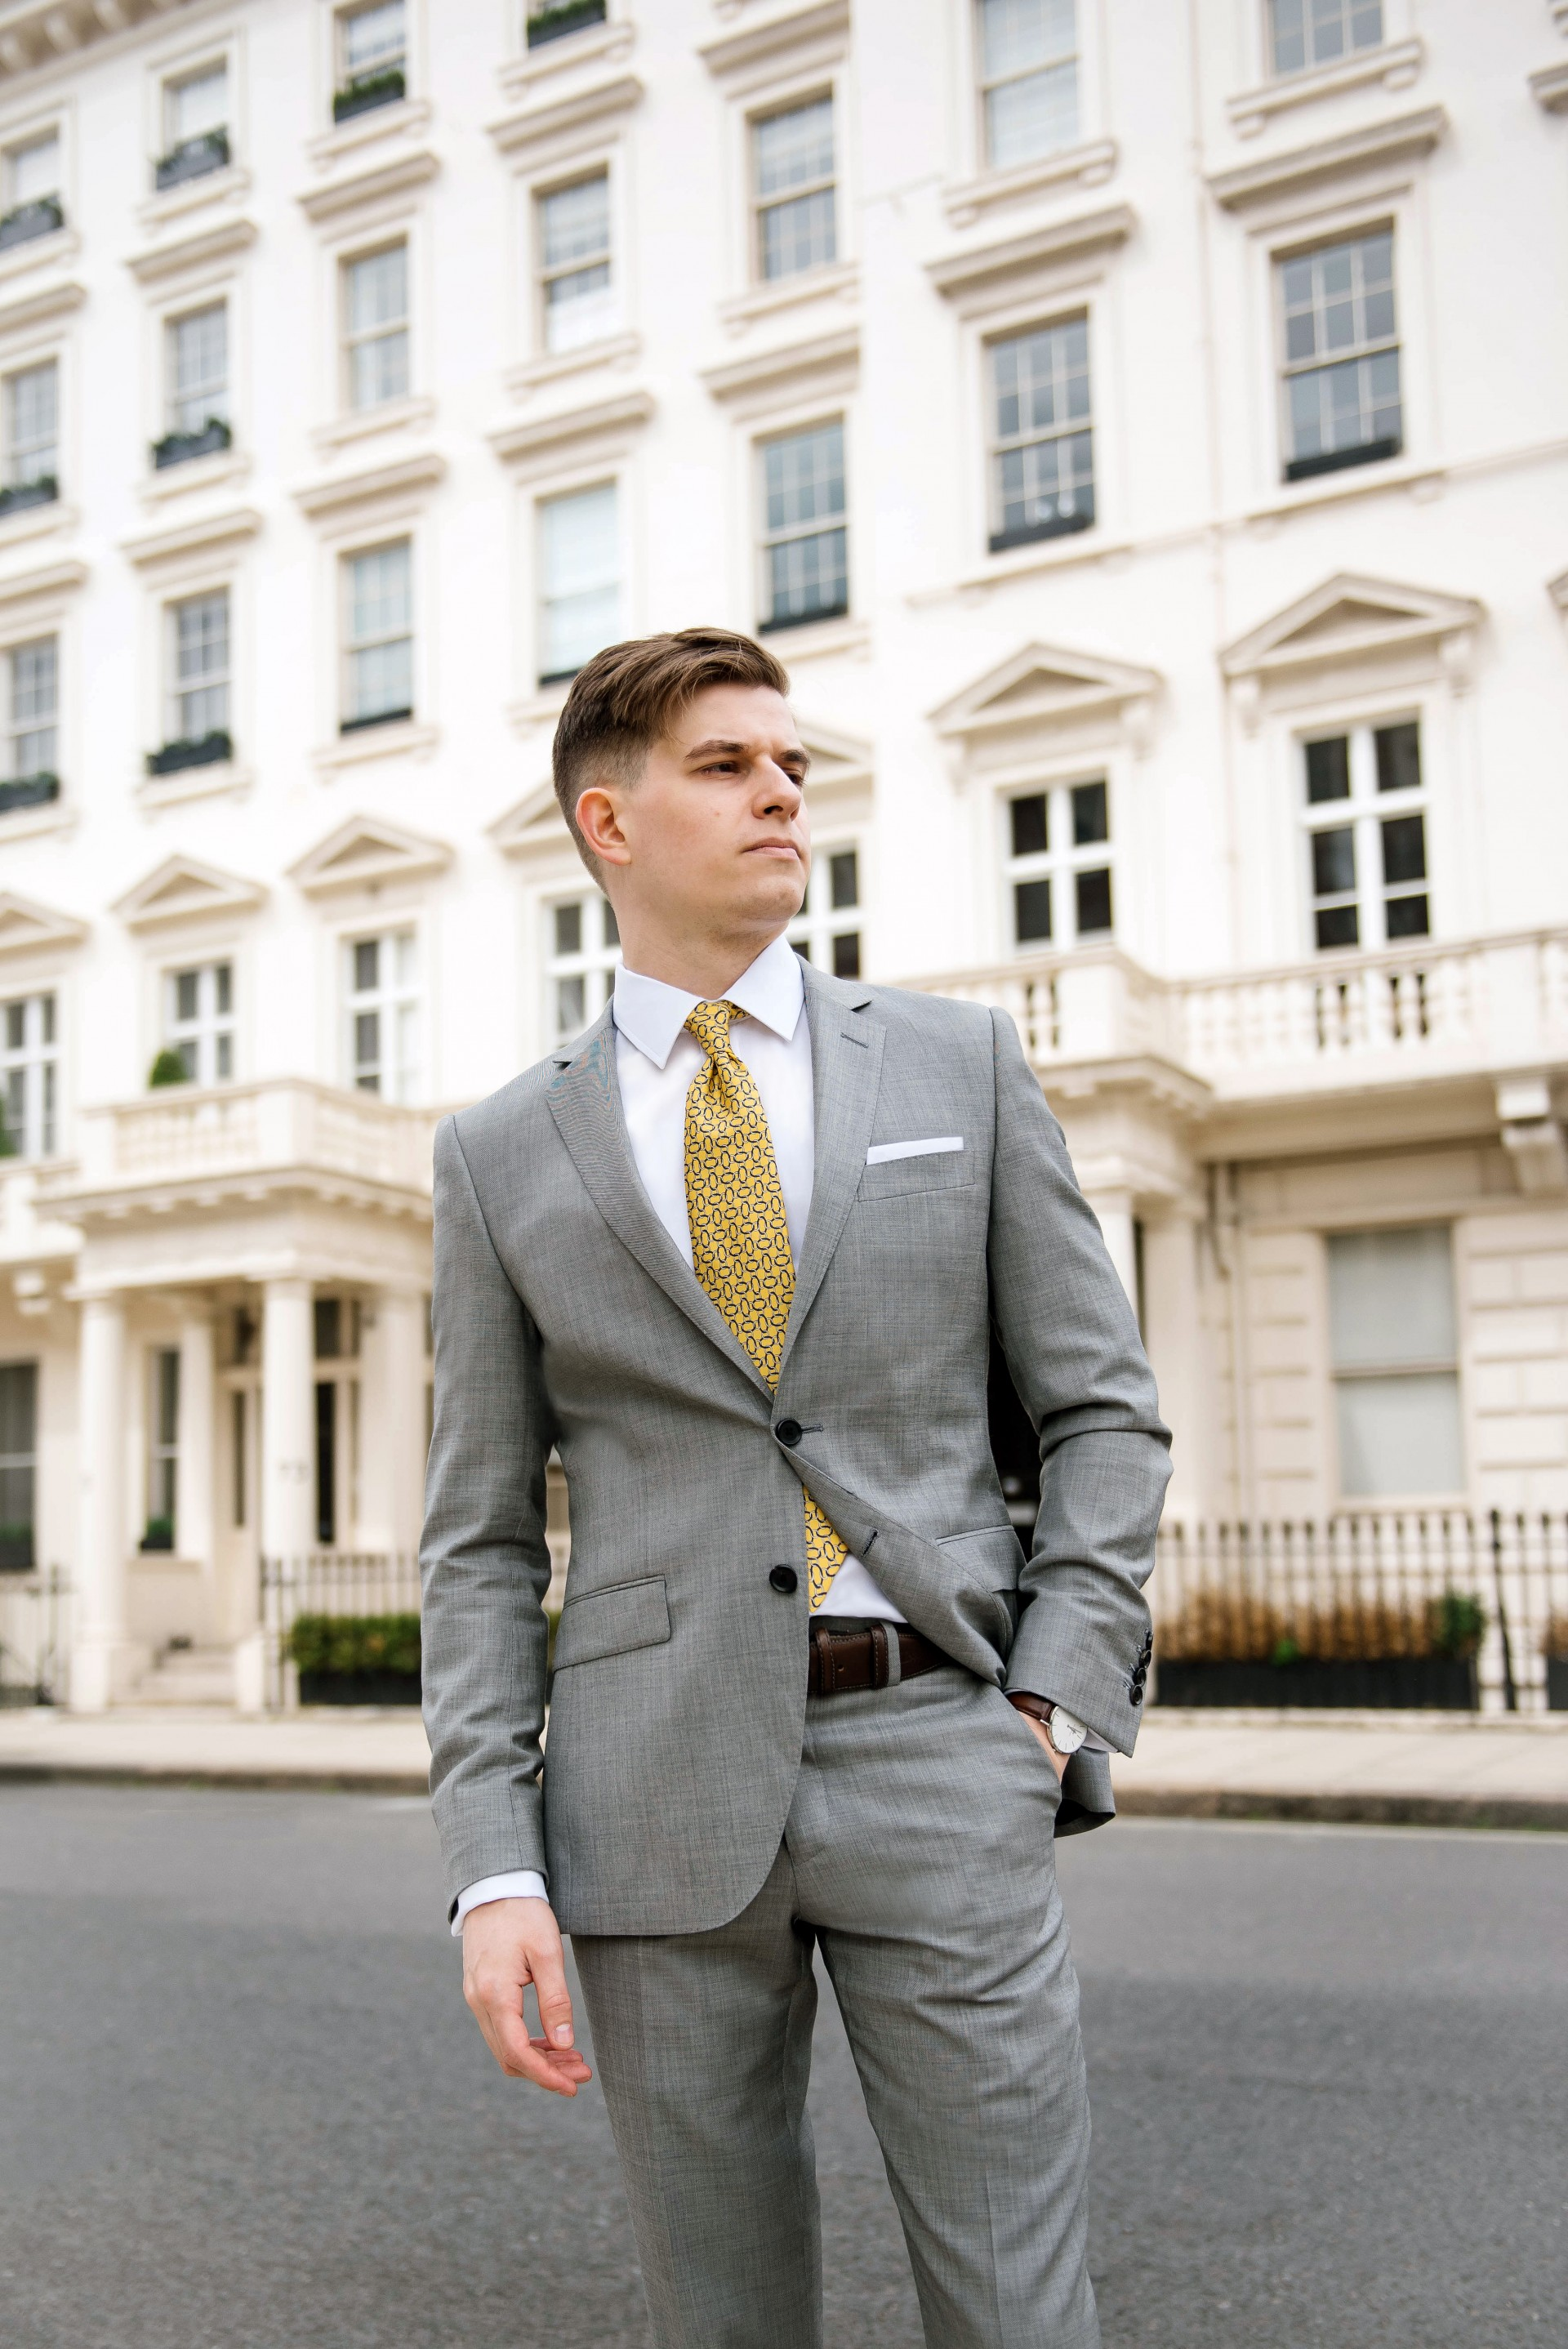 Men's Suit Style - Yellow Tie & Grey Suit 4